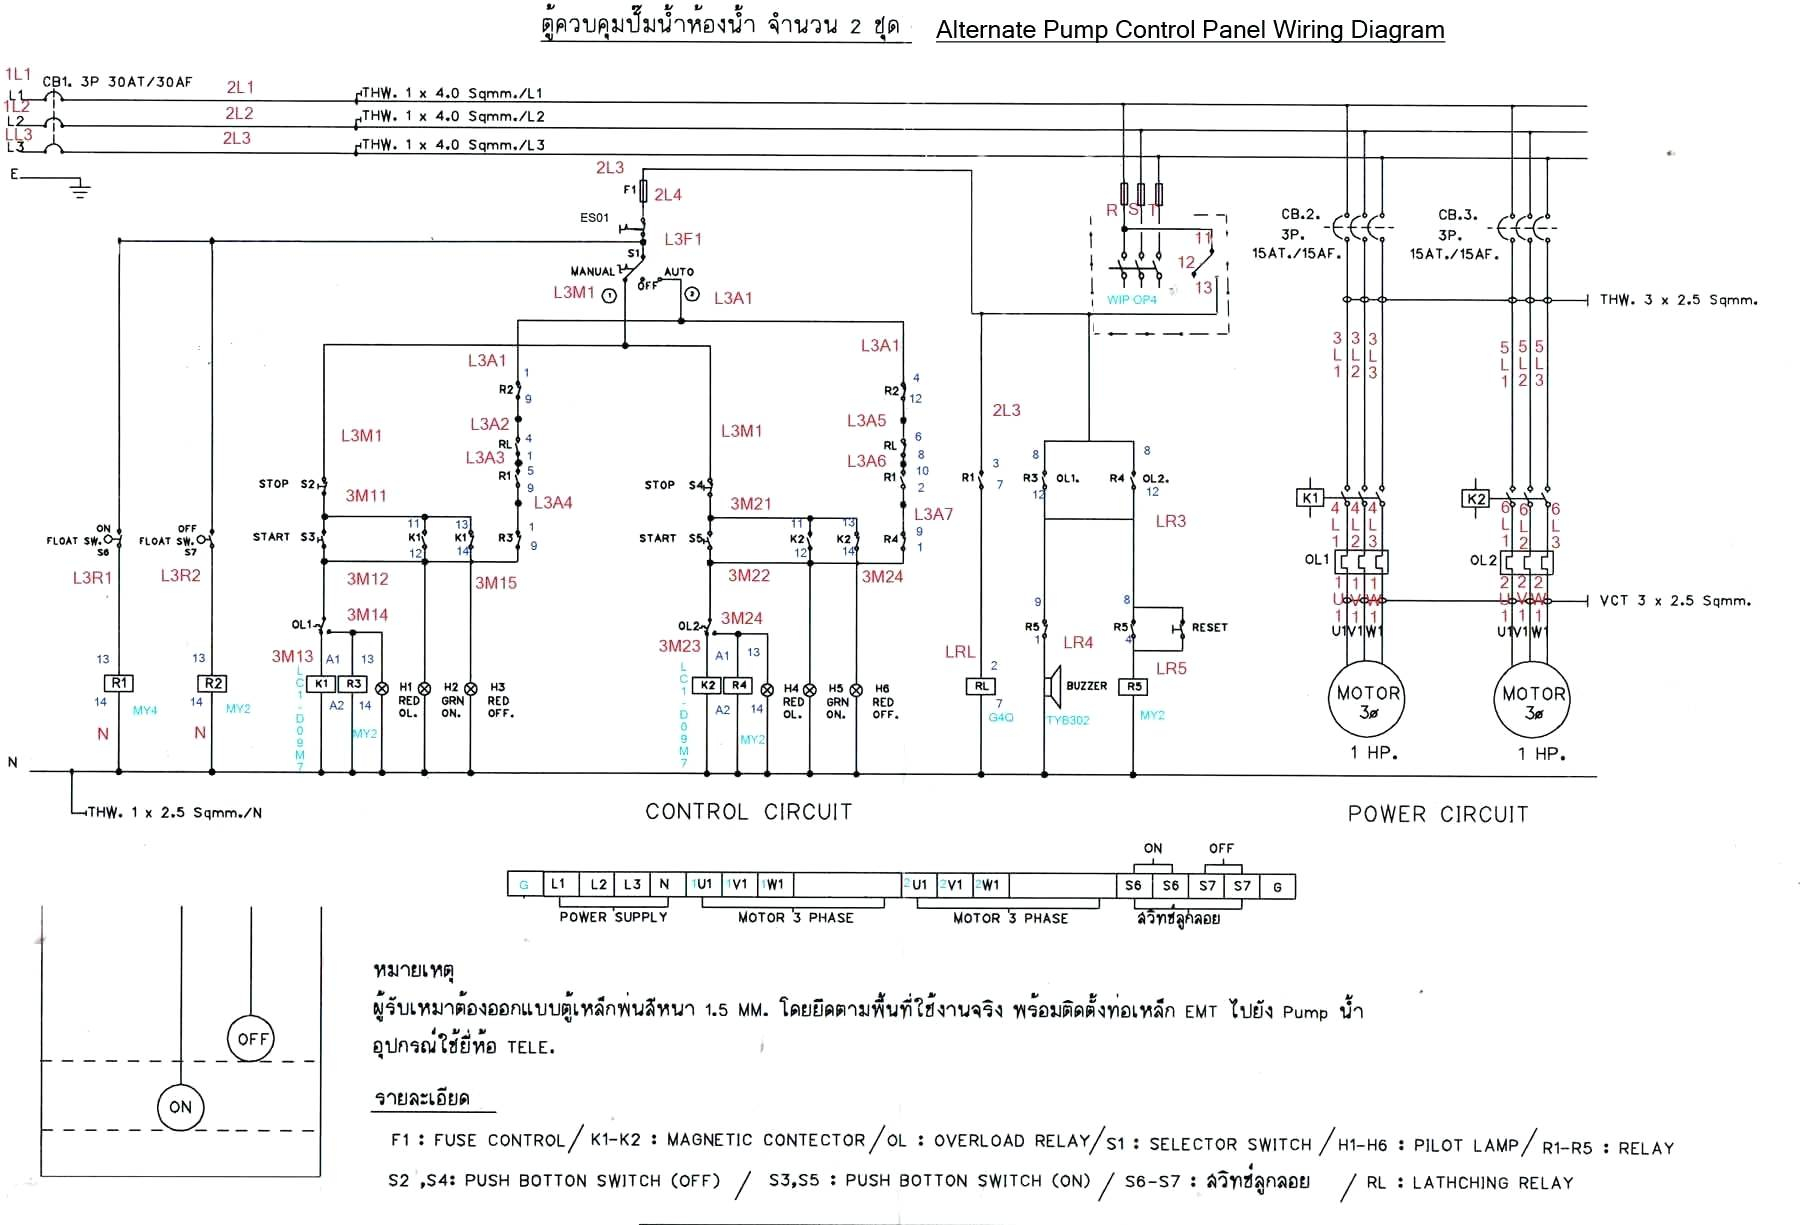 Fire Pump Controller Wiring Diagram Gallery Sample Engine Electrical Diagrams Collection Sel Best Of Download